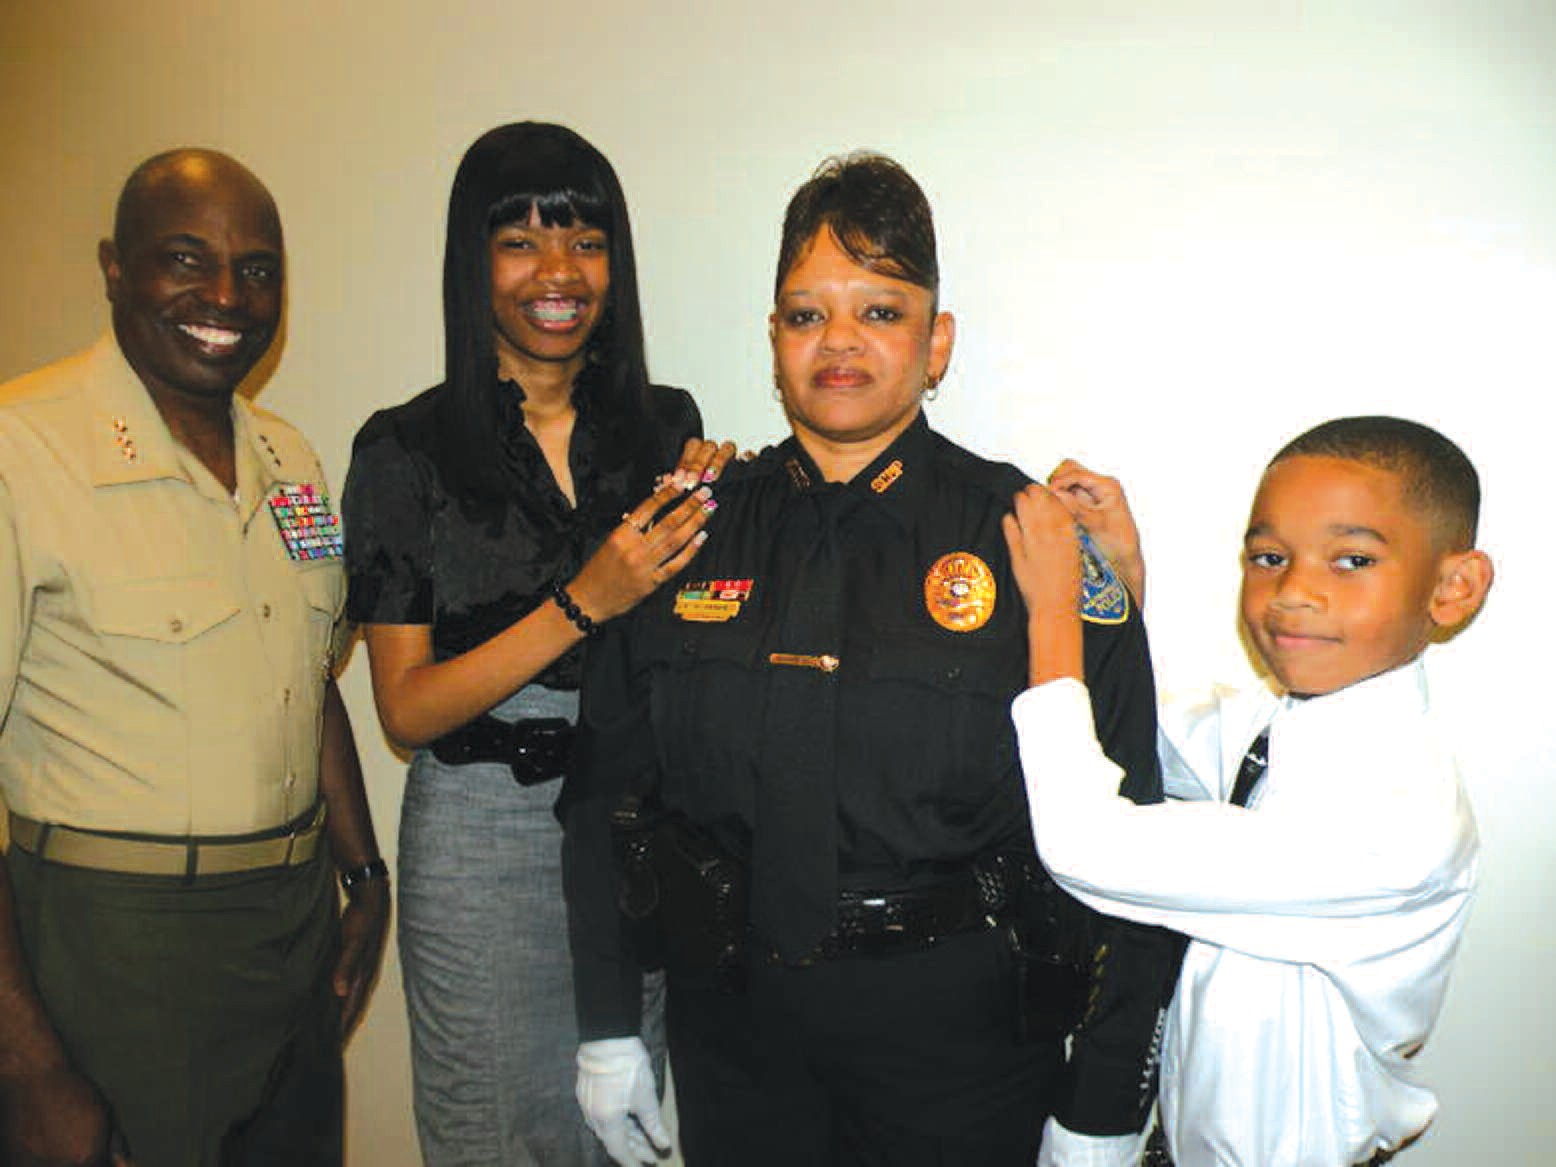 Pictured with Lieutenant Hughes are cousin Lieutenant General Walter Gaskin, daughter Kianni and son Keon.